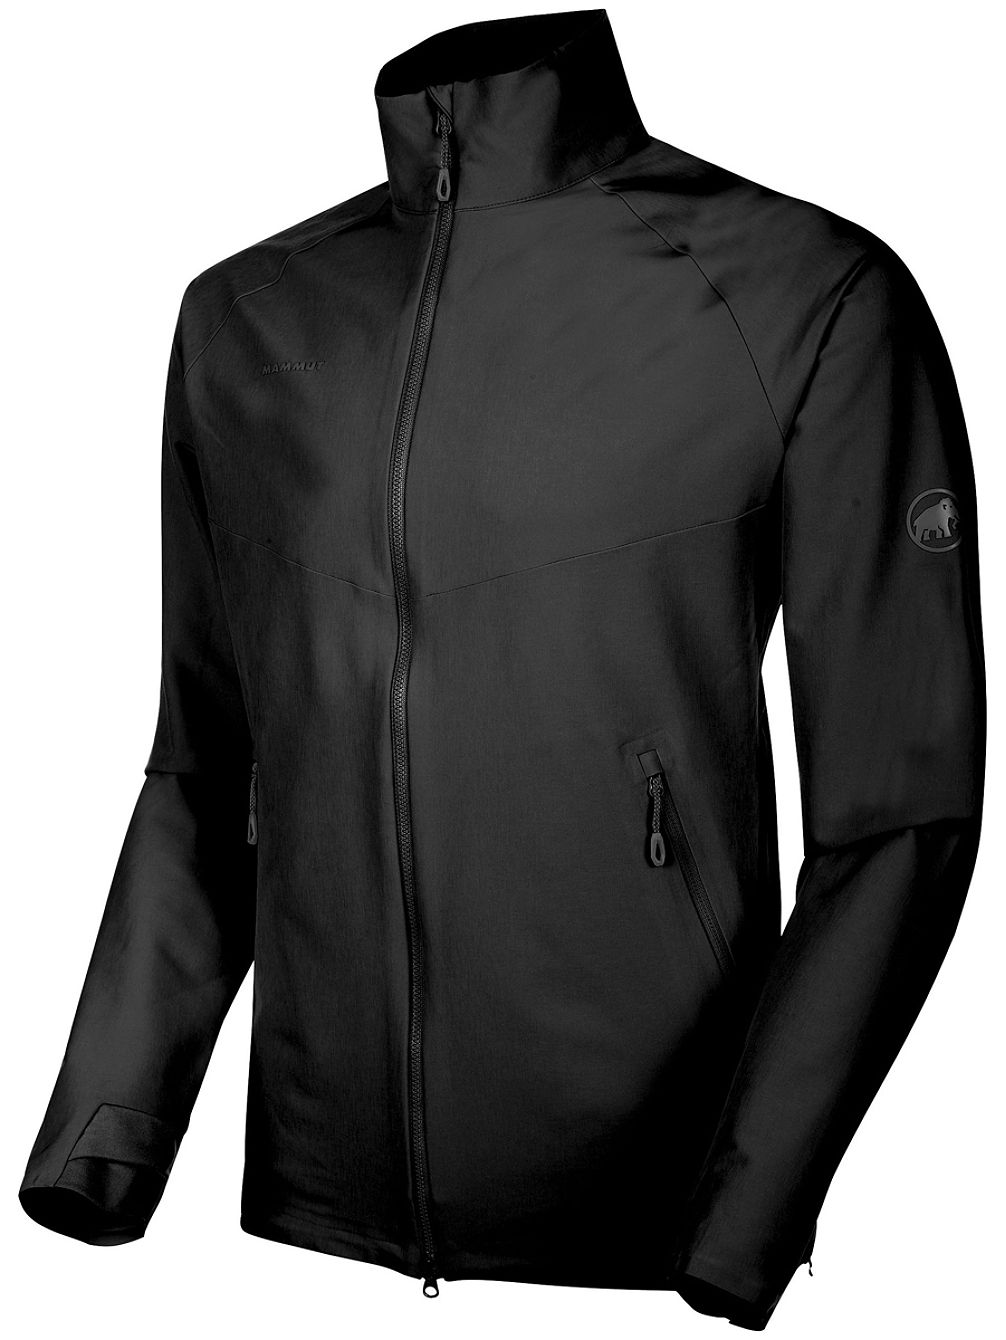 Macun Softshell Jacket